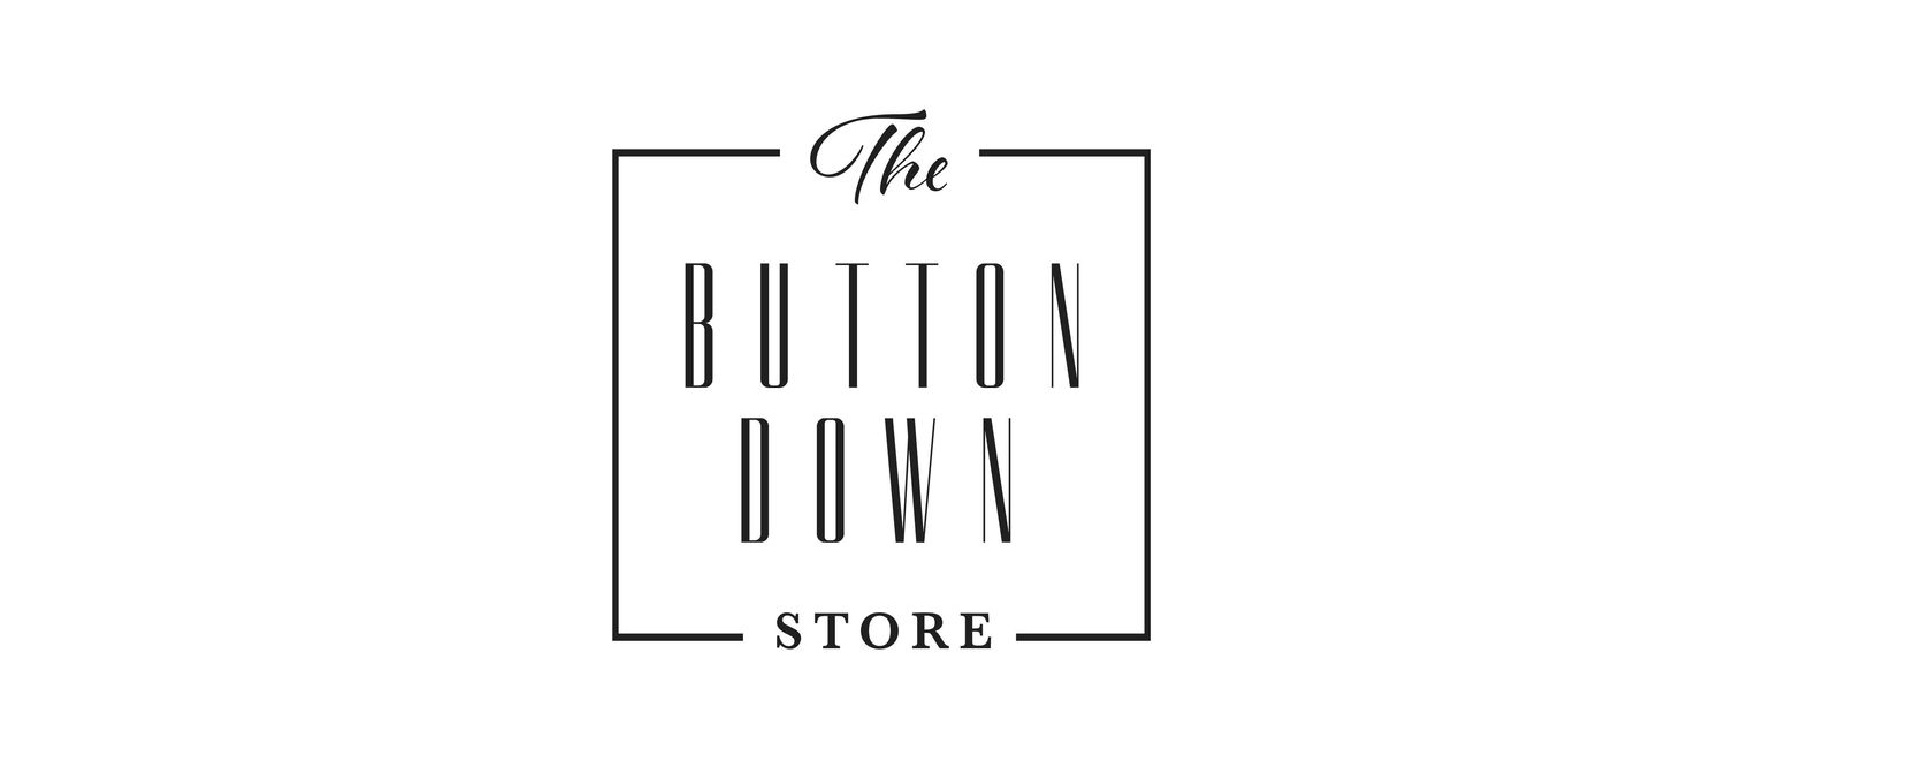 The Buttondown Store